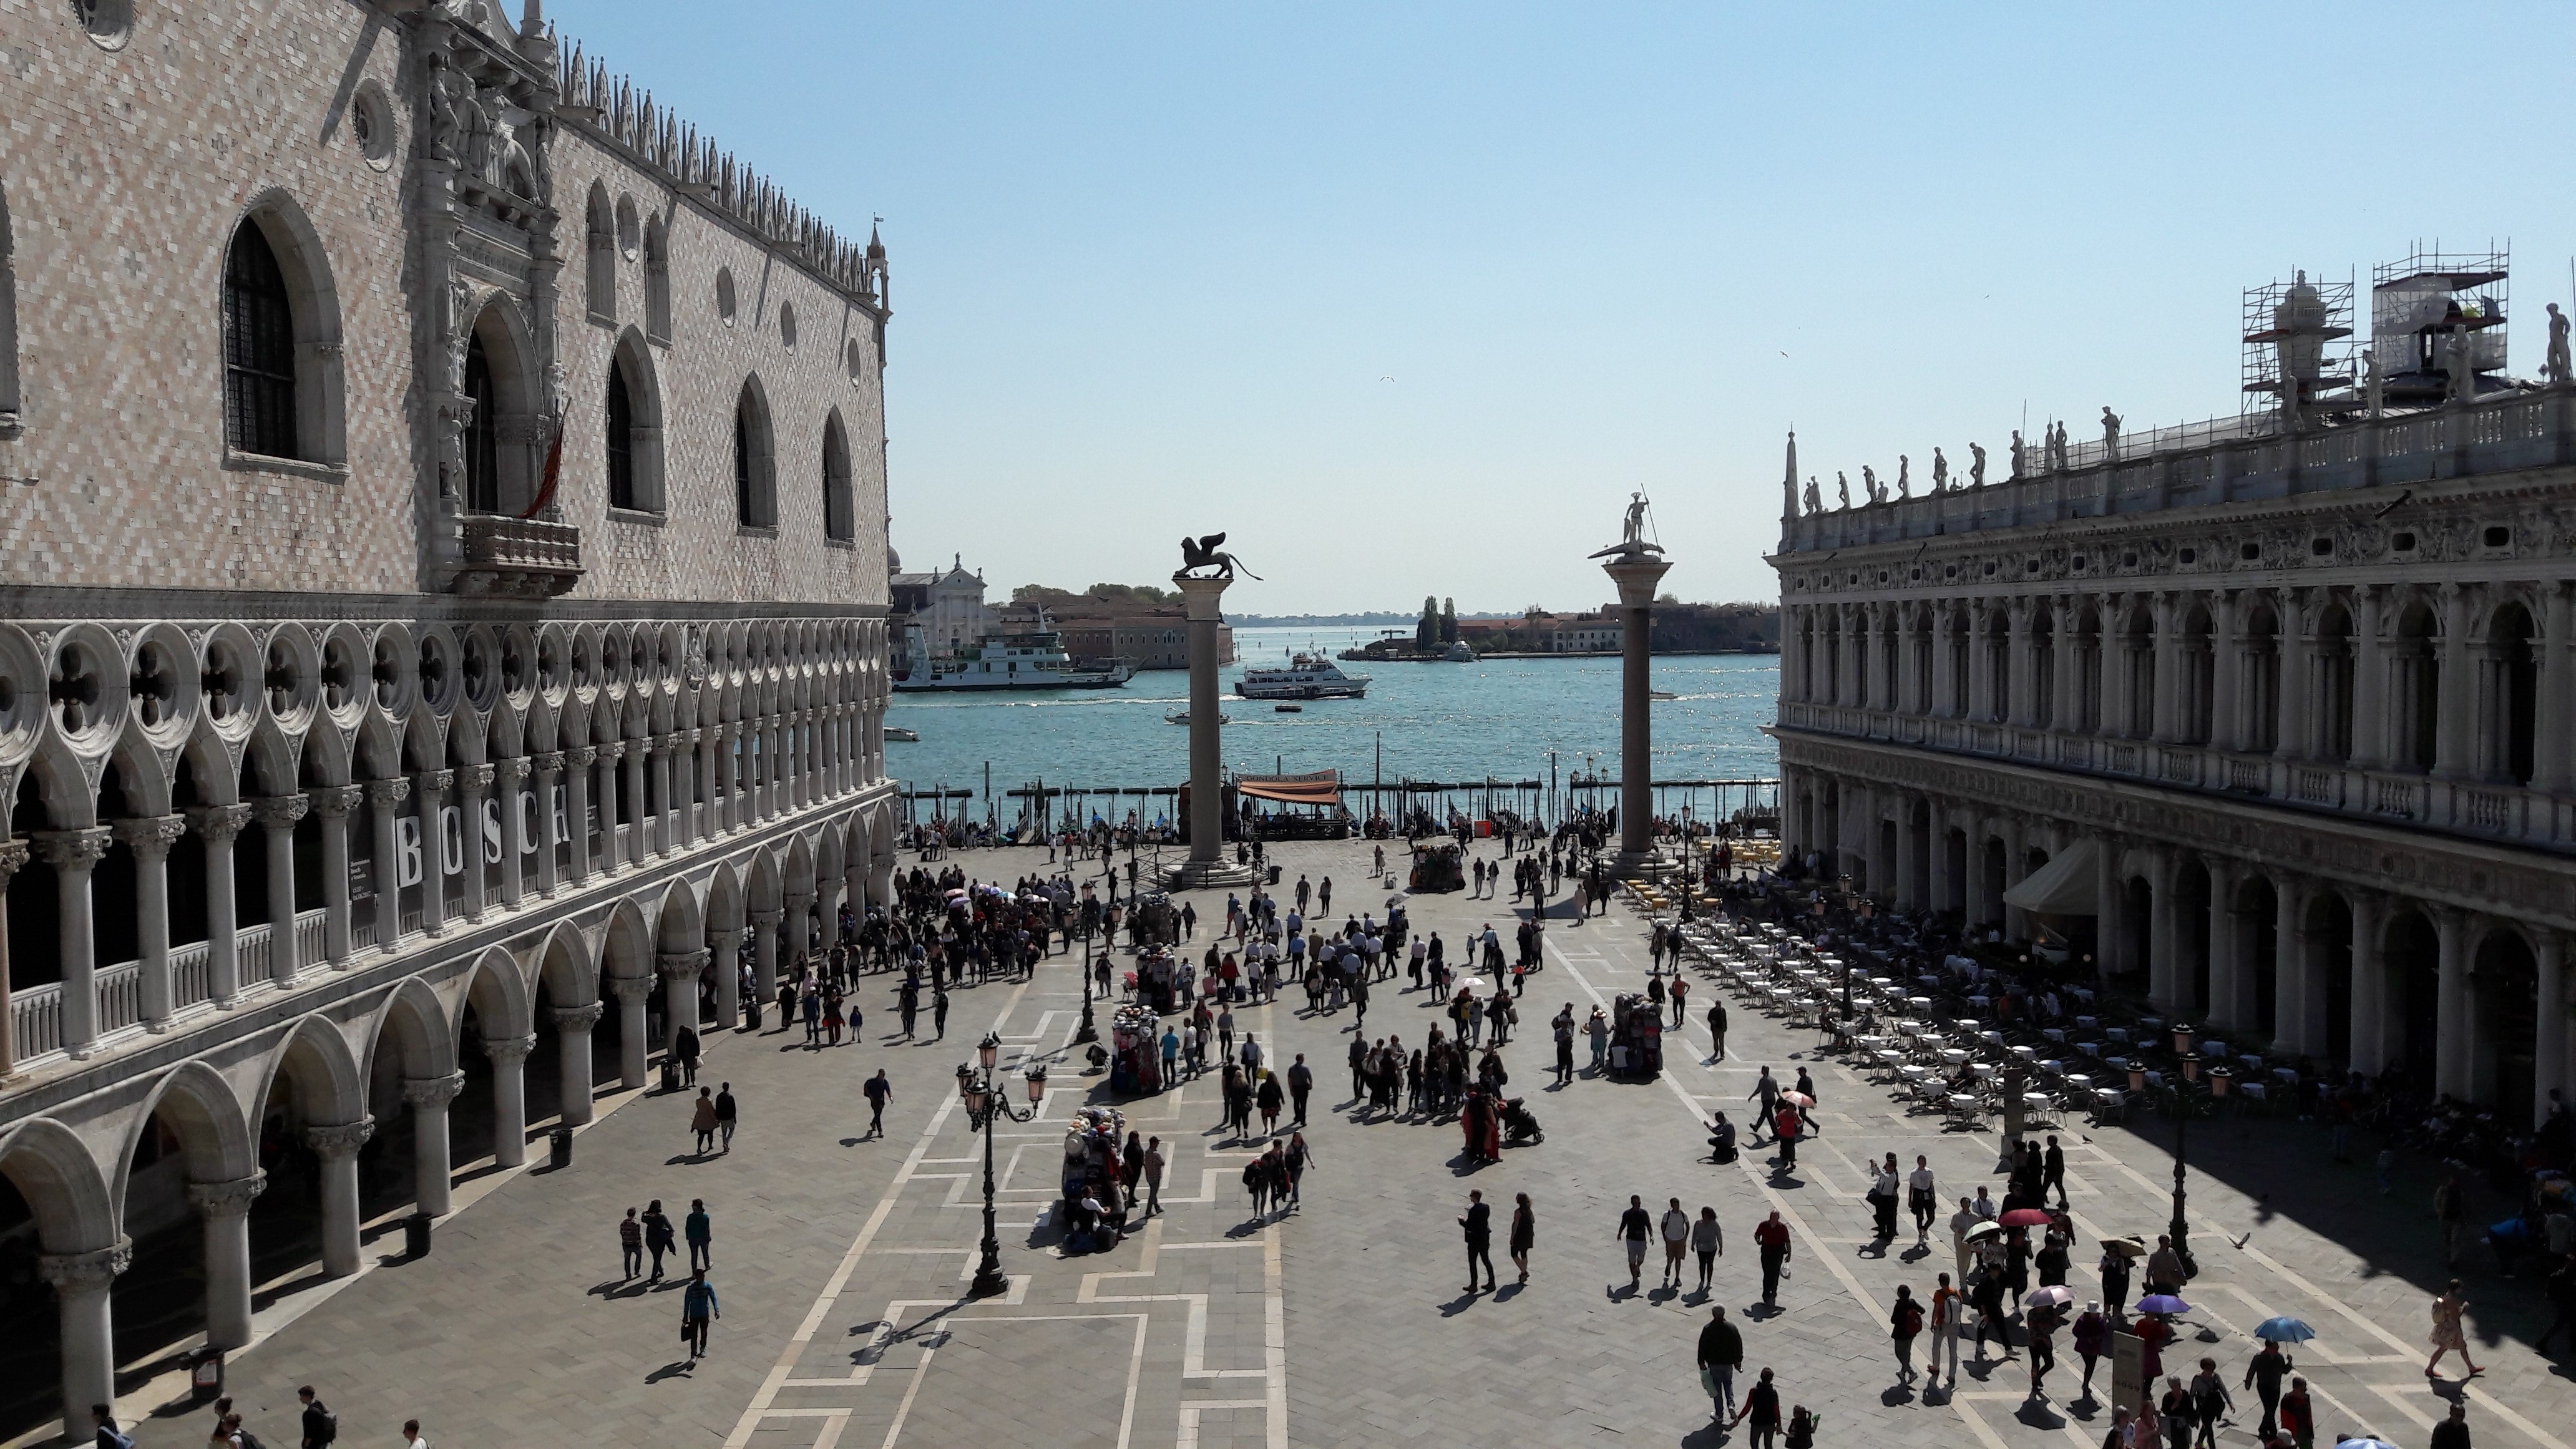 A medieval historian let loose in Venice …